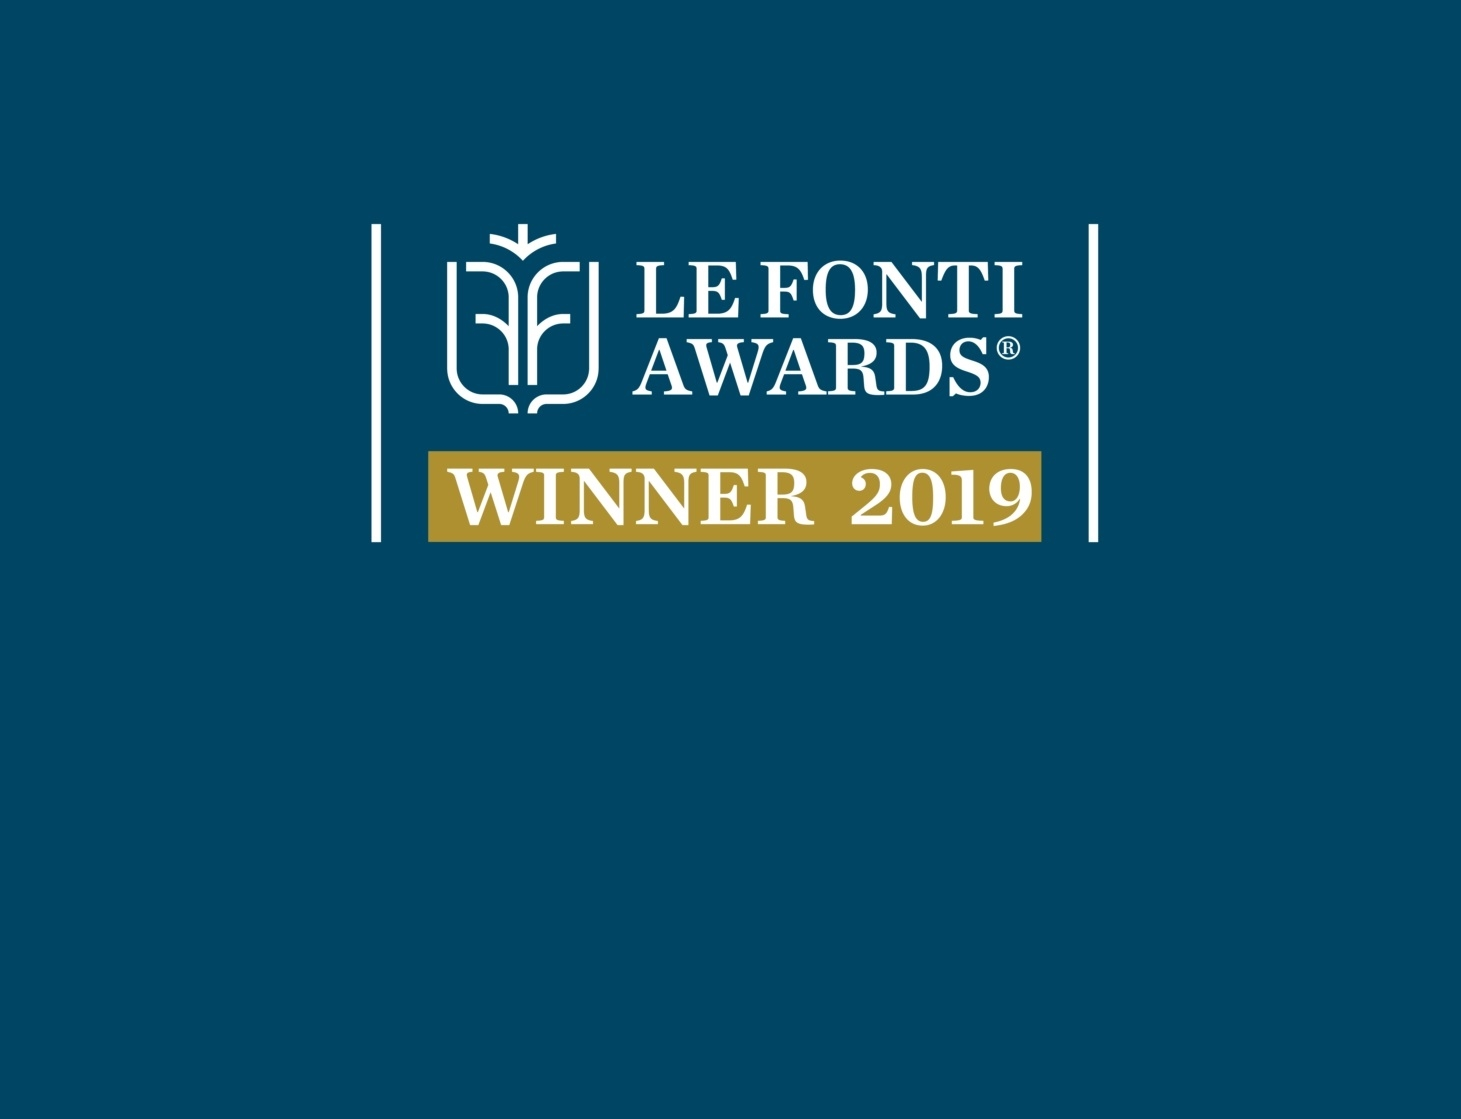 Polifarma among the winners of the 2019 Le Fonti Awards